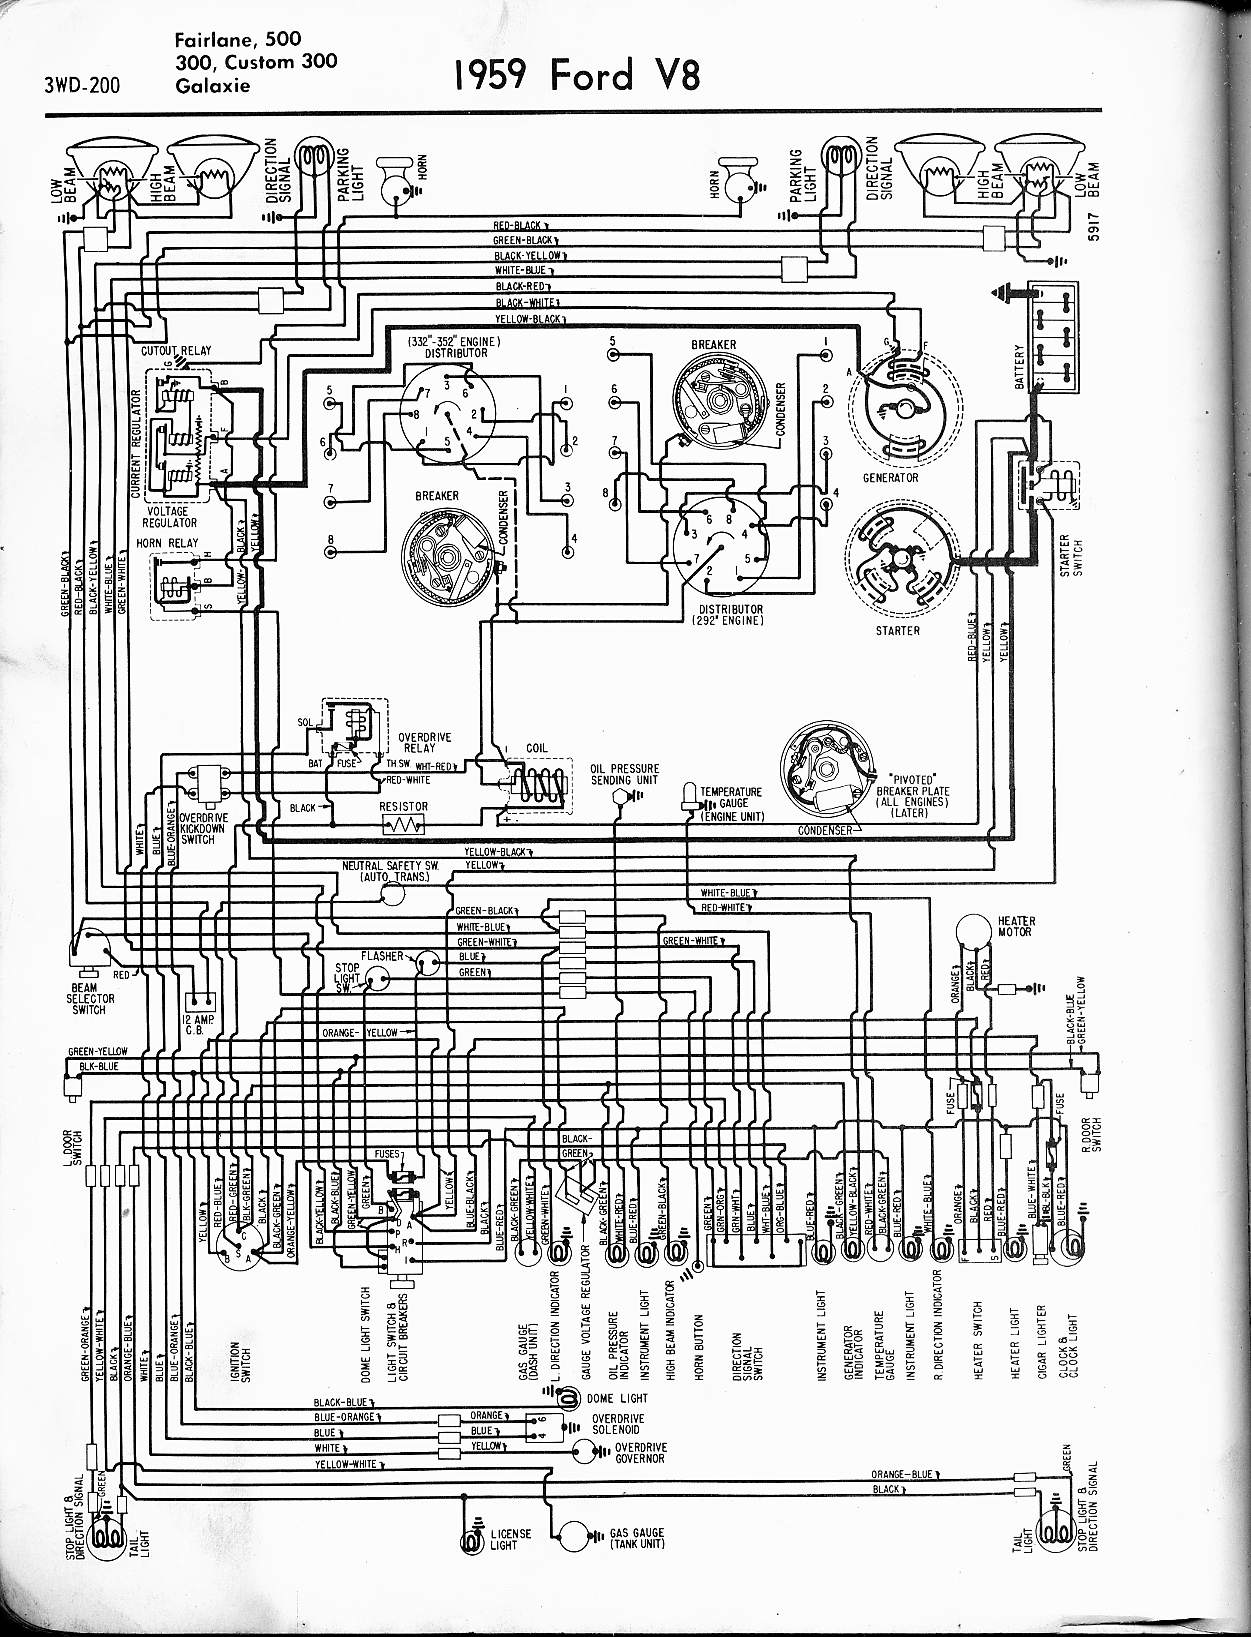 1961 Cadillac Wiring Diagram Reinvent Your 1970 Diagrams 1956 Ford Schematic Detailed Schematics Rh Keyplusrubber Com Radio 1965